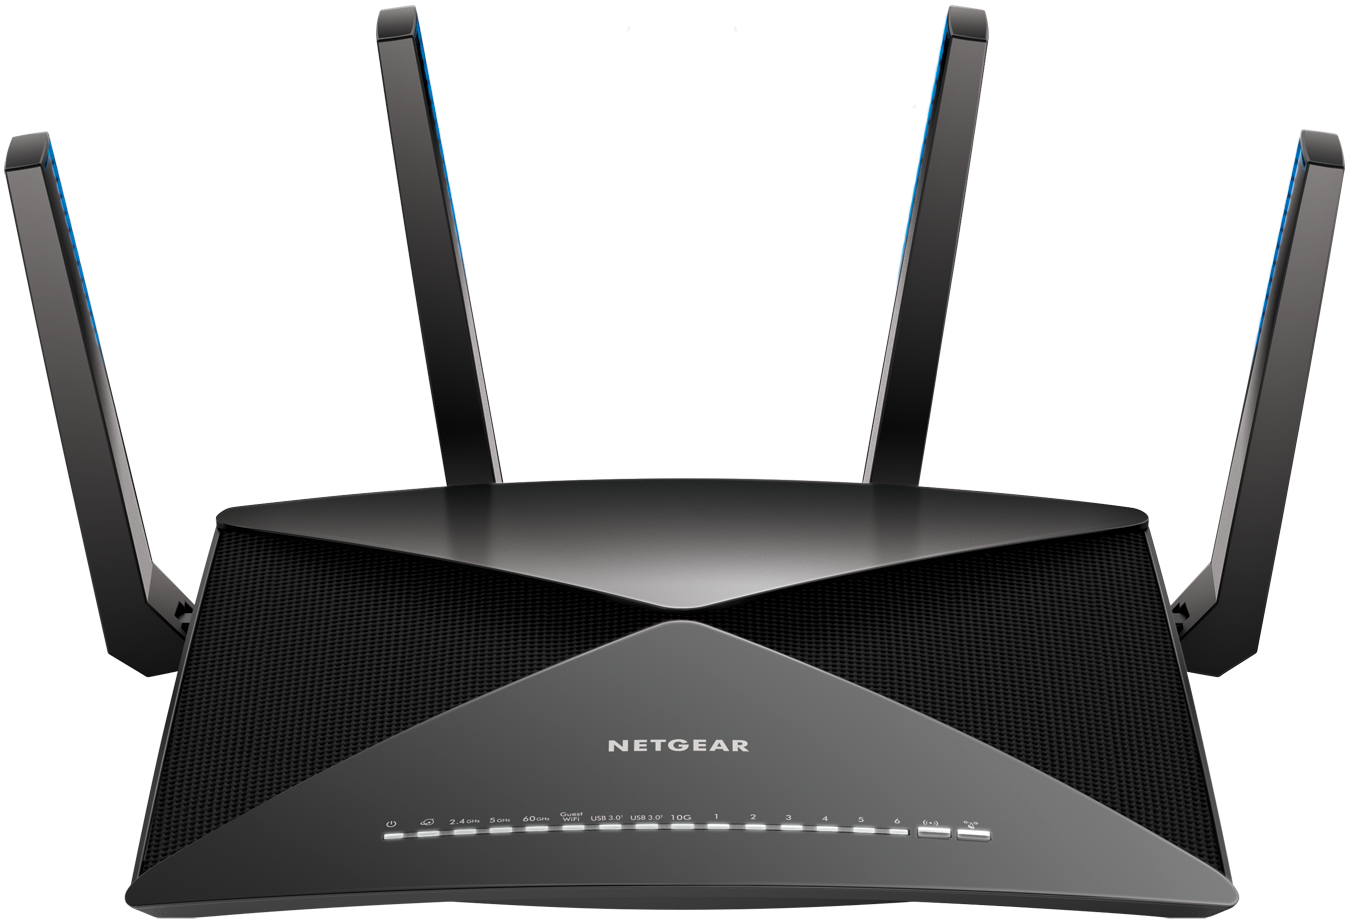 NETGEAR Nighthawk X10 AD7200 Plex Tri Band Smart WiFi Router (R9000-100NAS)